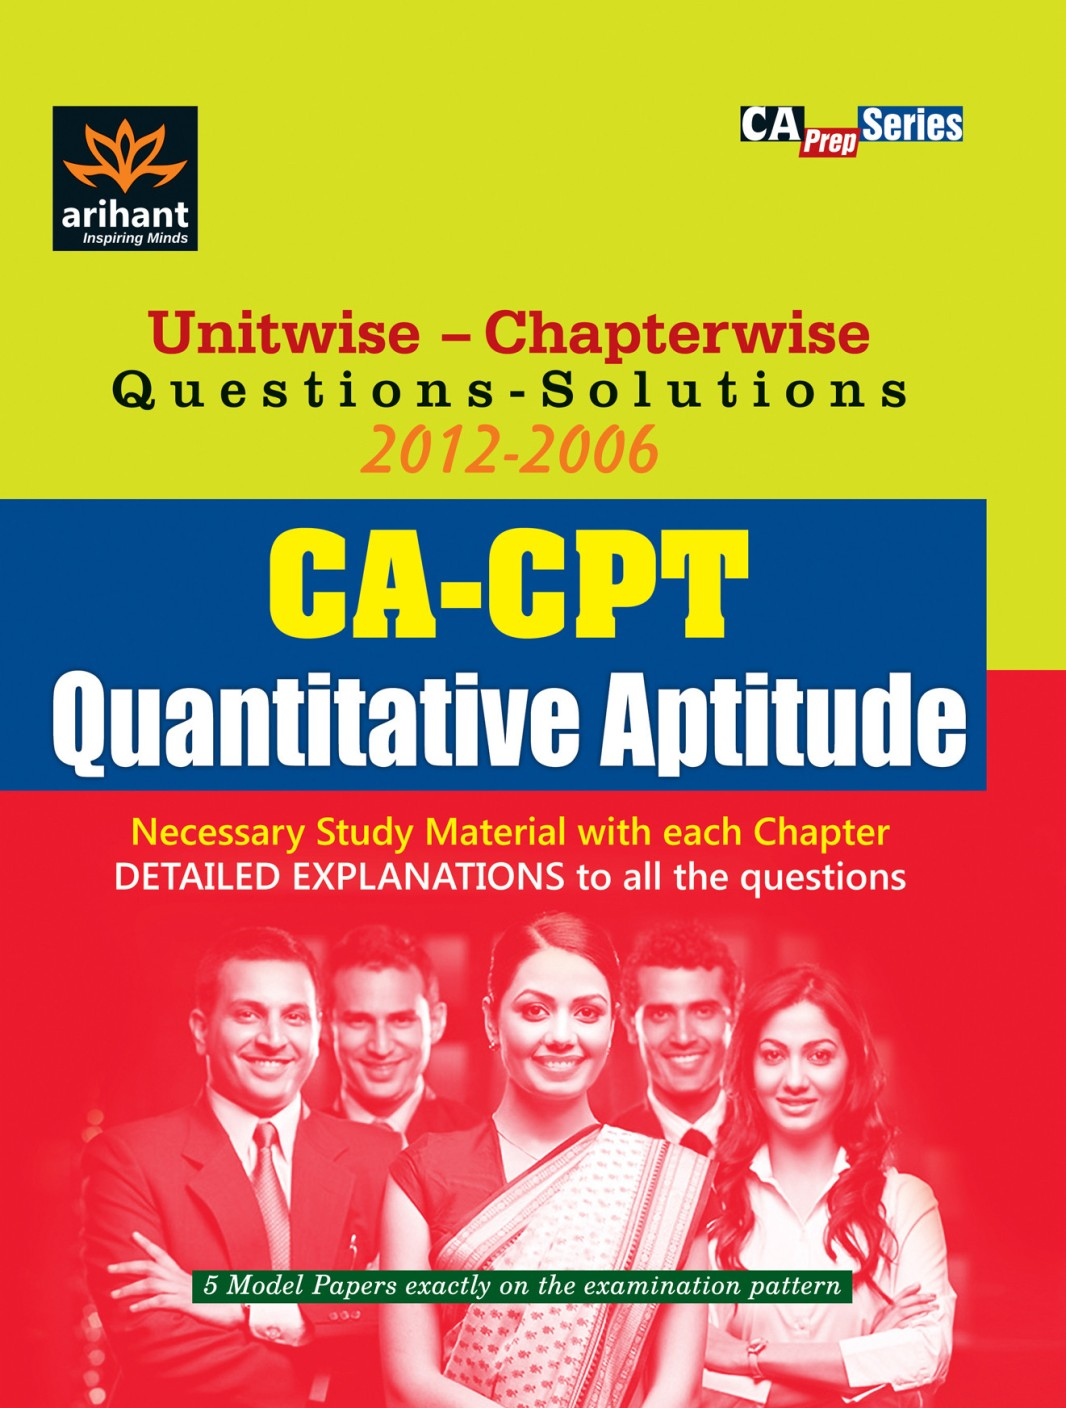 ca cpt 2012 Ca cpt exam is held twice a year by icai  says november 2012 topper  maths and i wanted to become a ca  so for ca cpt exam is necessary or have another option.